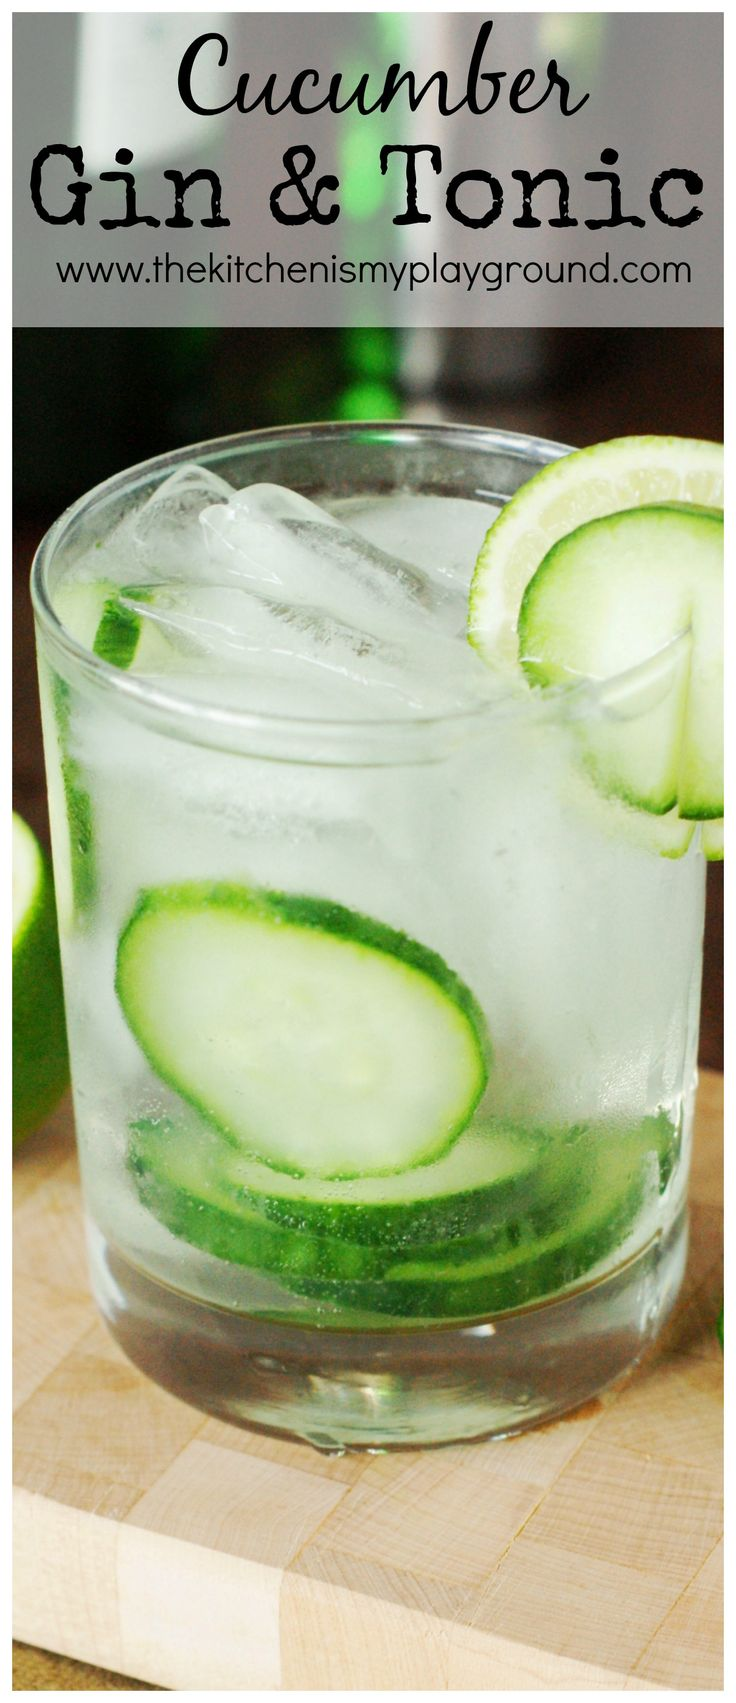 Cucumber Gin & Tonic ~ this cocktail is sure to keep you cool on those hot summer days!   www.thekitchenismyplayground.com